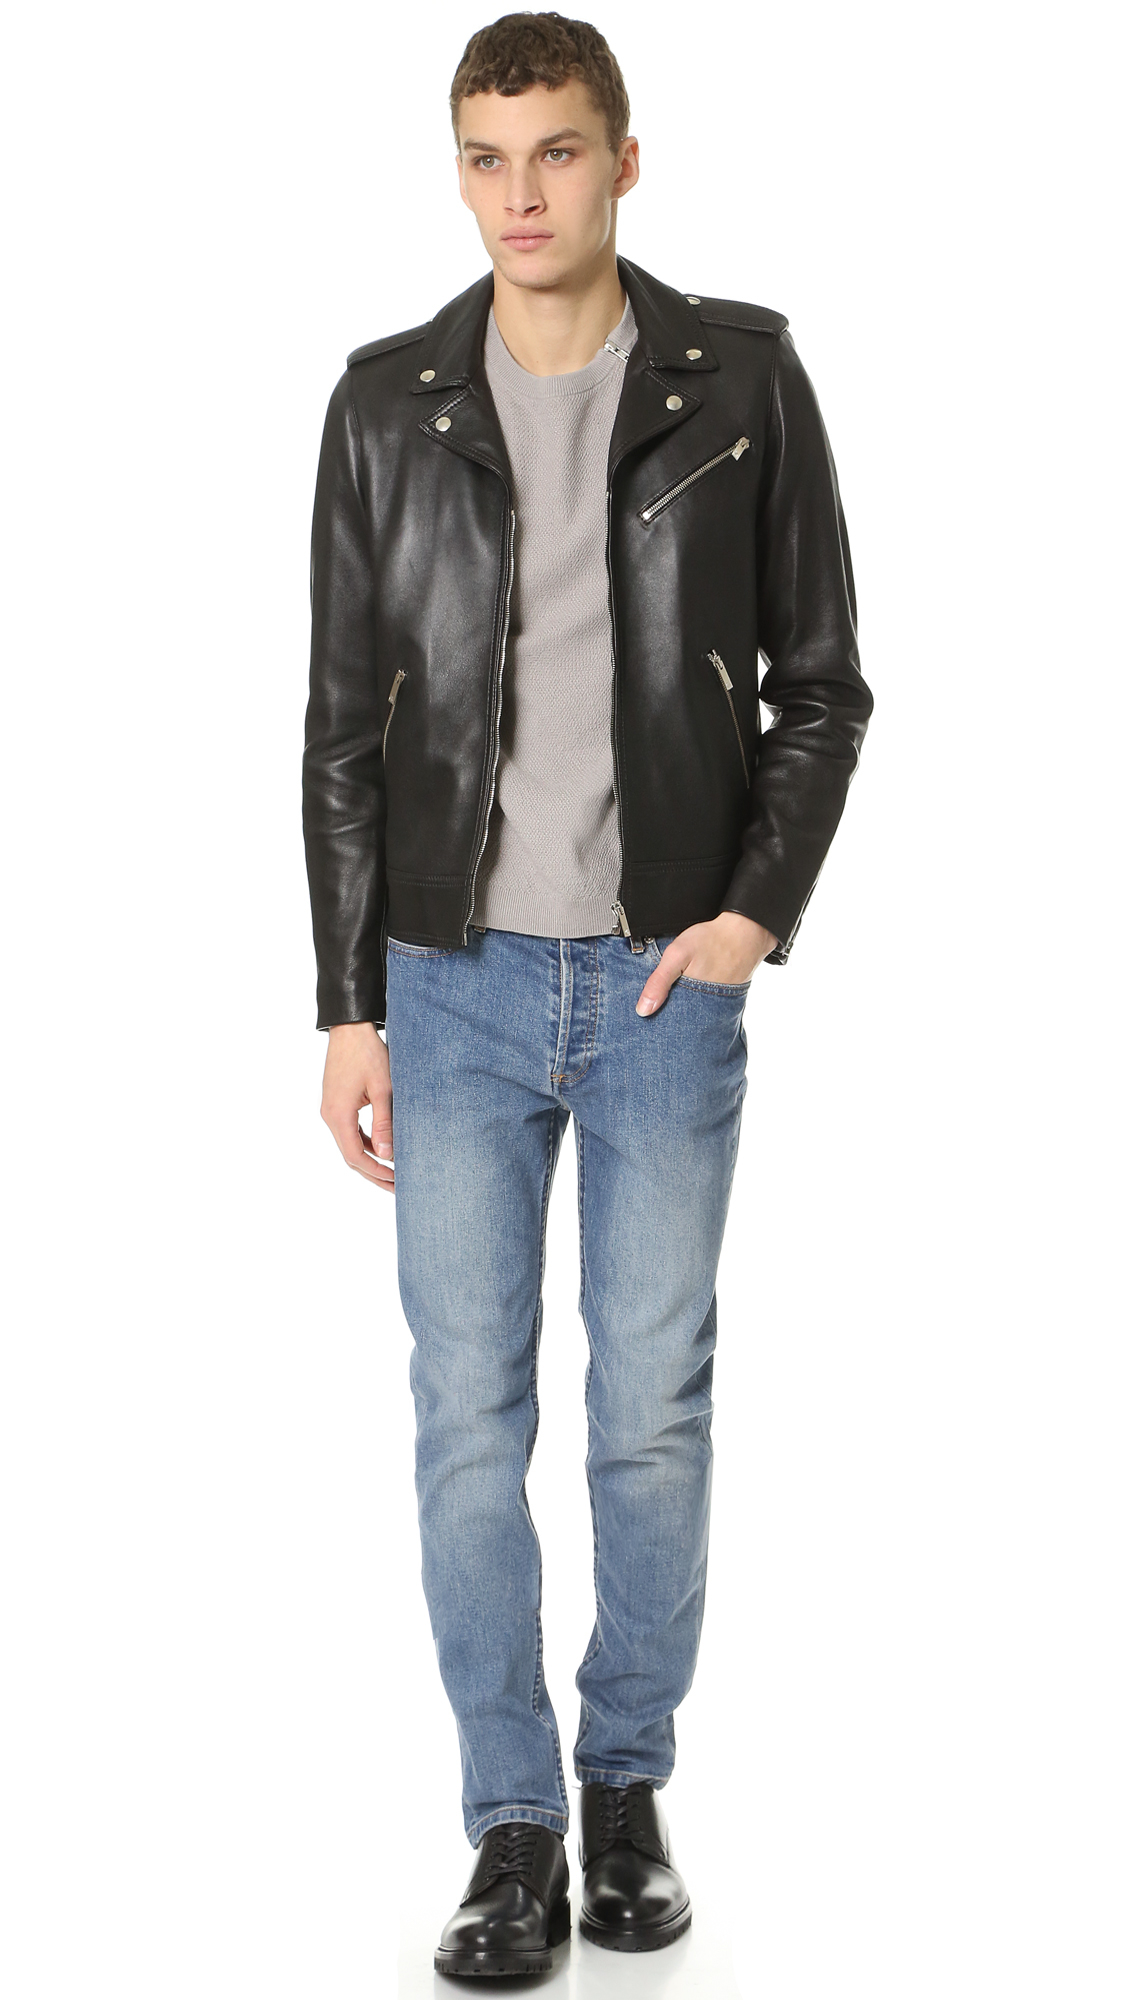 fe7535e75e The Kooples Thick Lamb Leather Jacket in Black for Men - Lyst